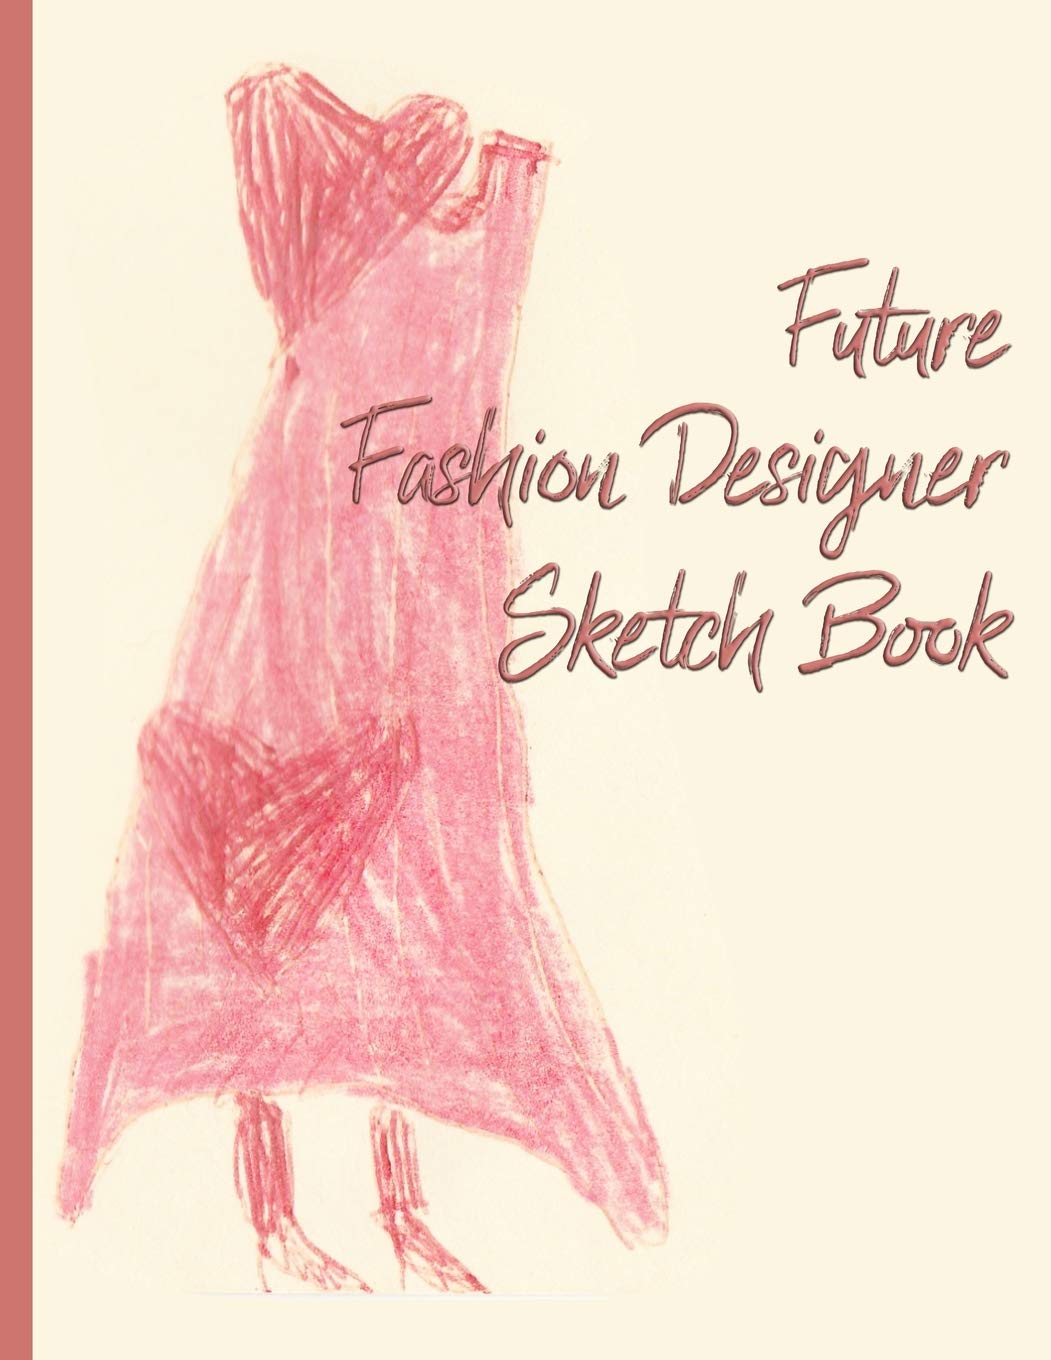 Future Fashion Designer Sketch Book For Girls And Boys Red Dress With Hearts Kidsspace 9781688417564 Amazon Com Books